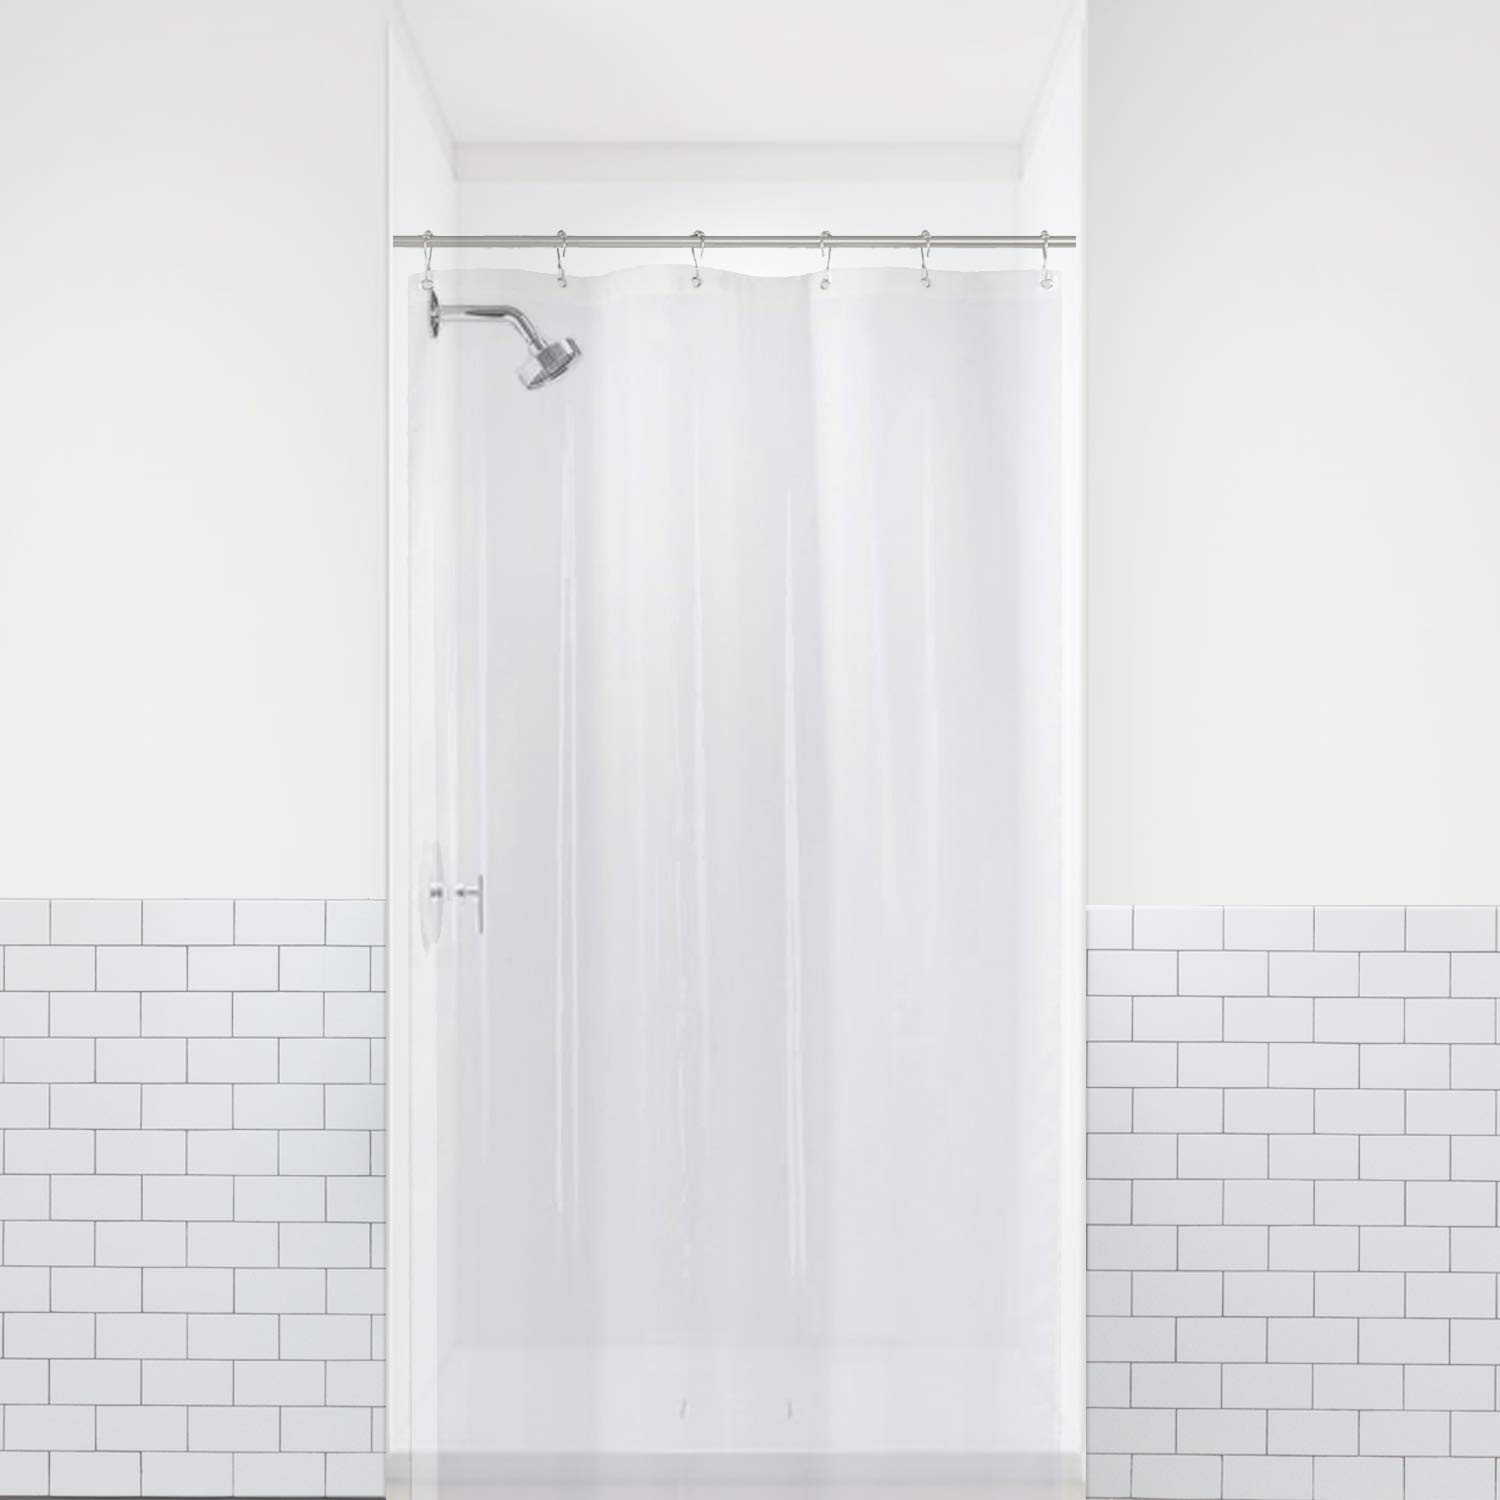 LiBa PEVA 8G Small Bathroom Shower Stall Curtain Liner, 36 W x 72 H Narrow Size, Clear, 8G Heavy Duty Waterproof Shower Stall Curtain Liner Anti-Microbial Mildew Resistant